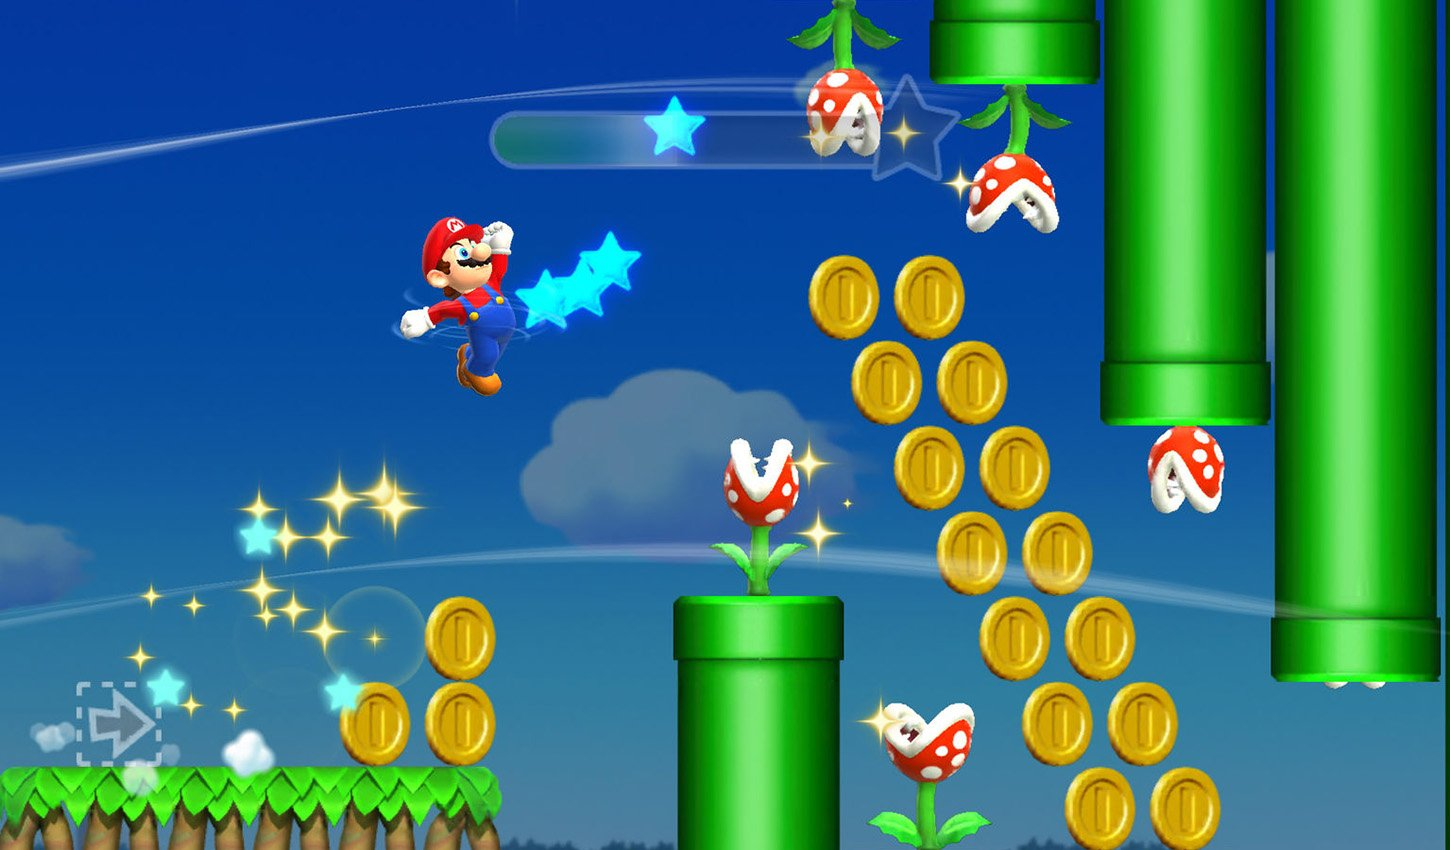 PSA: You can get 300 easy My Nintendo Platinum Points a month with quick daily Super Mario Run sessions screenshot